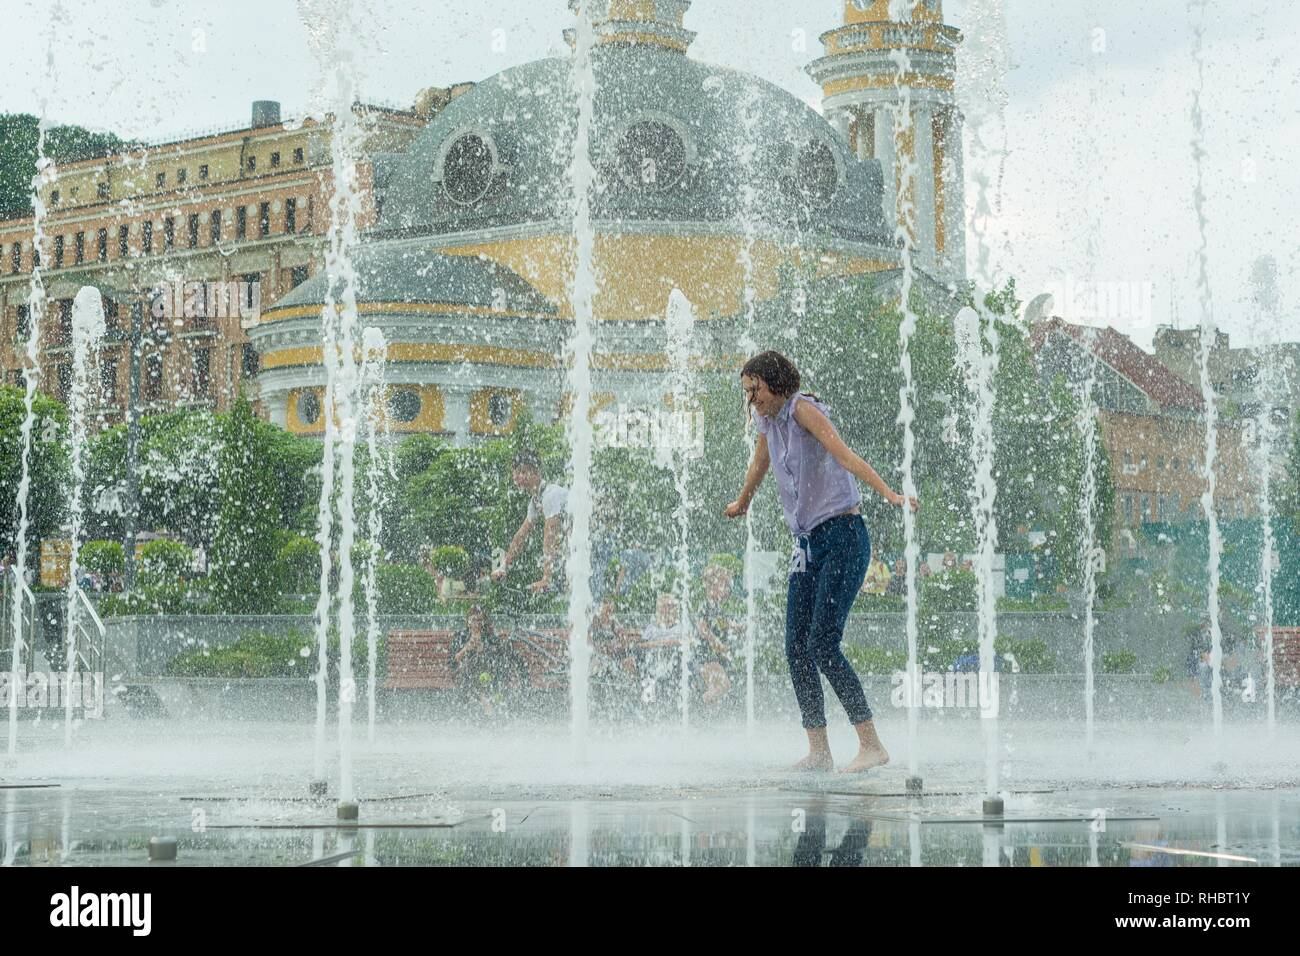 Young teenage girl in fountain. Girl happy, clothes wet, background city architecture - Stock Image